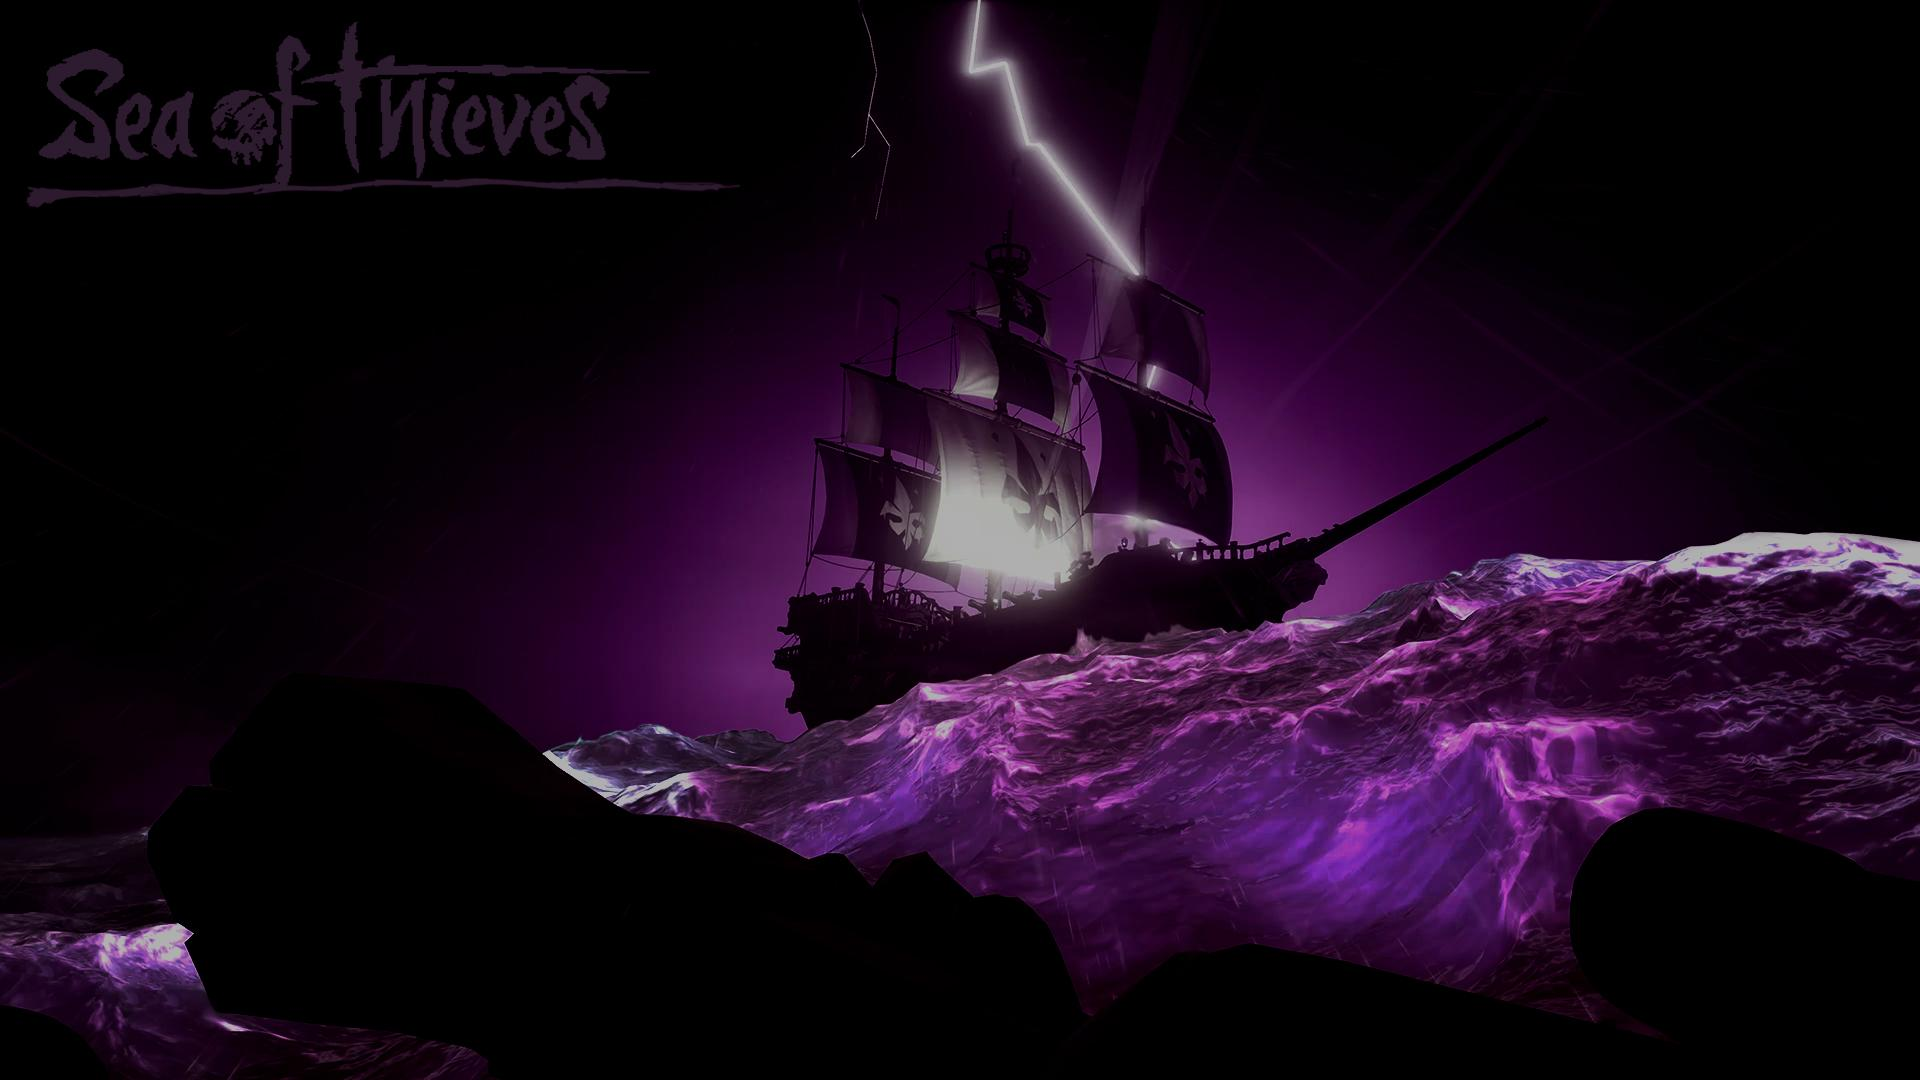 Sea Of Thieves Desktop Background Posted By Christopher Anderson